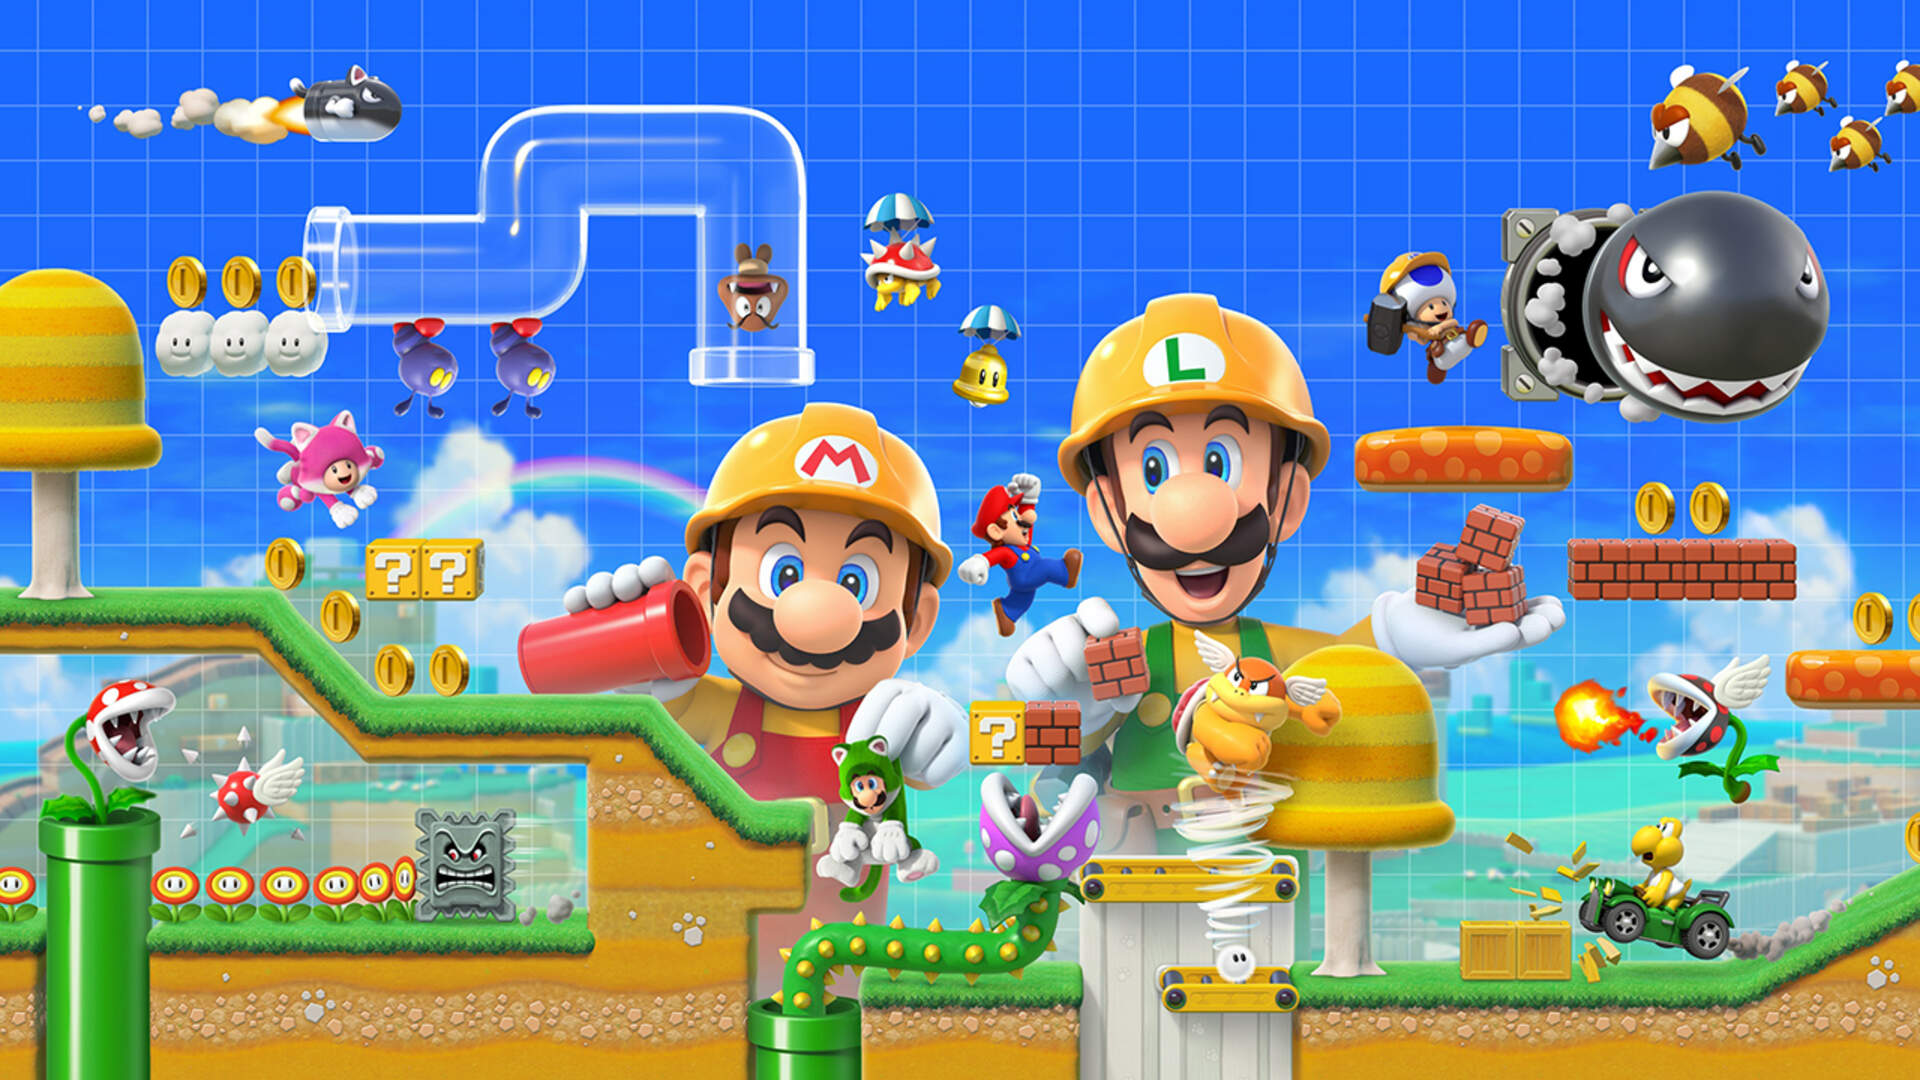 Super Mario Maker 2 Release Date Revealed, And It's Potentially Just in Time for a Switch Lite Release